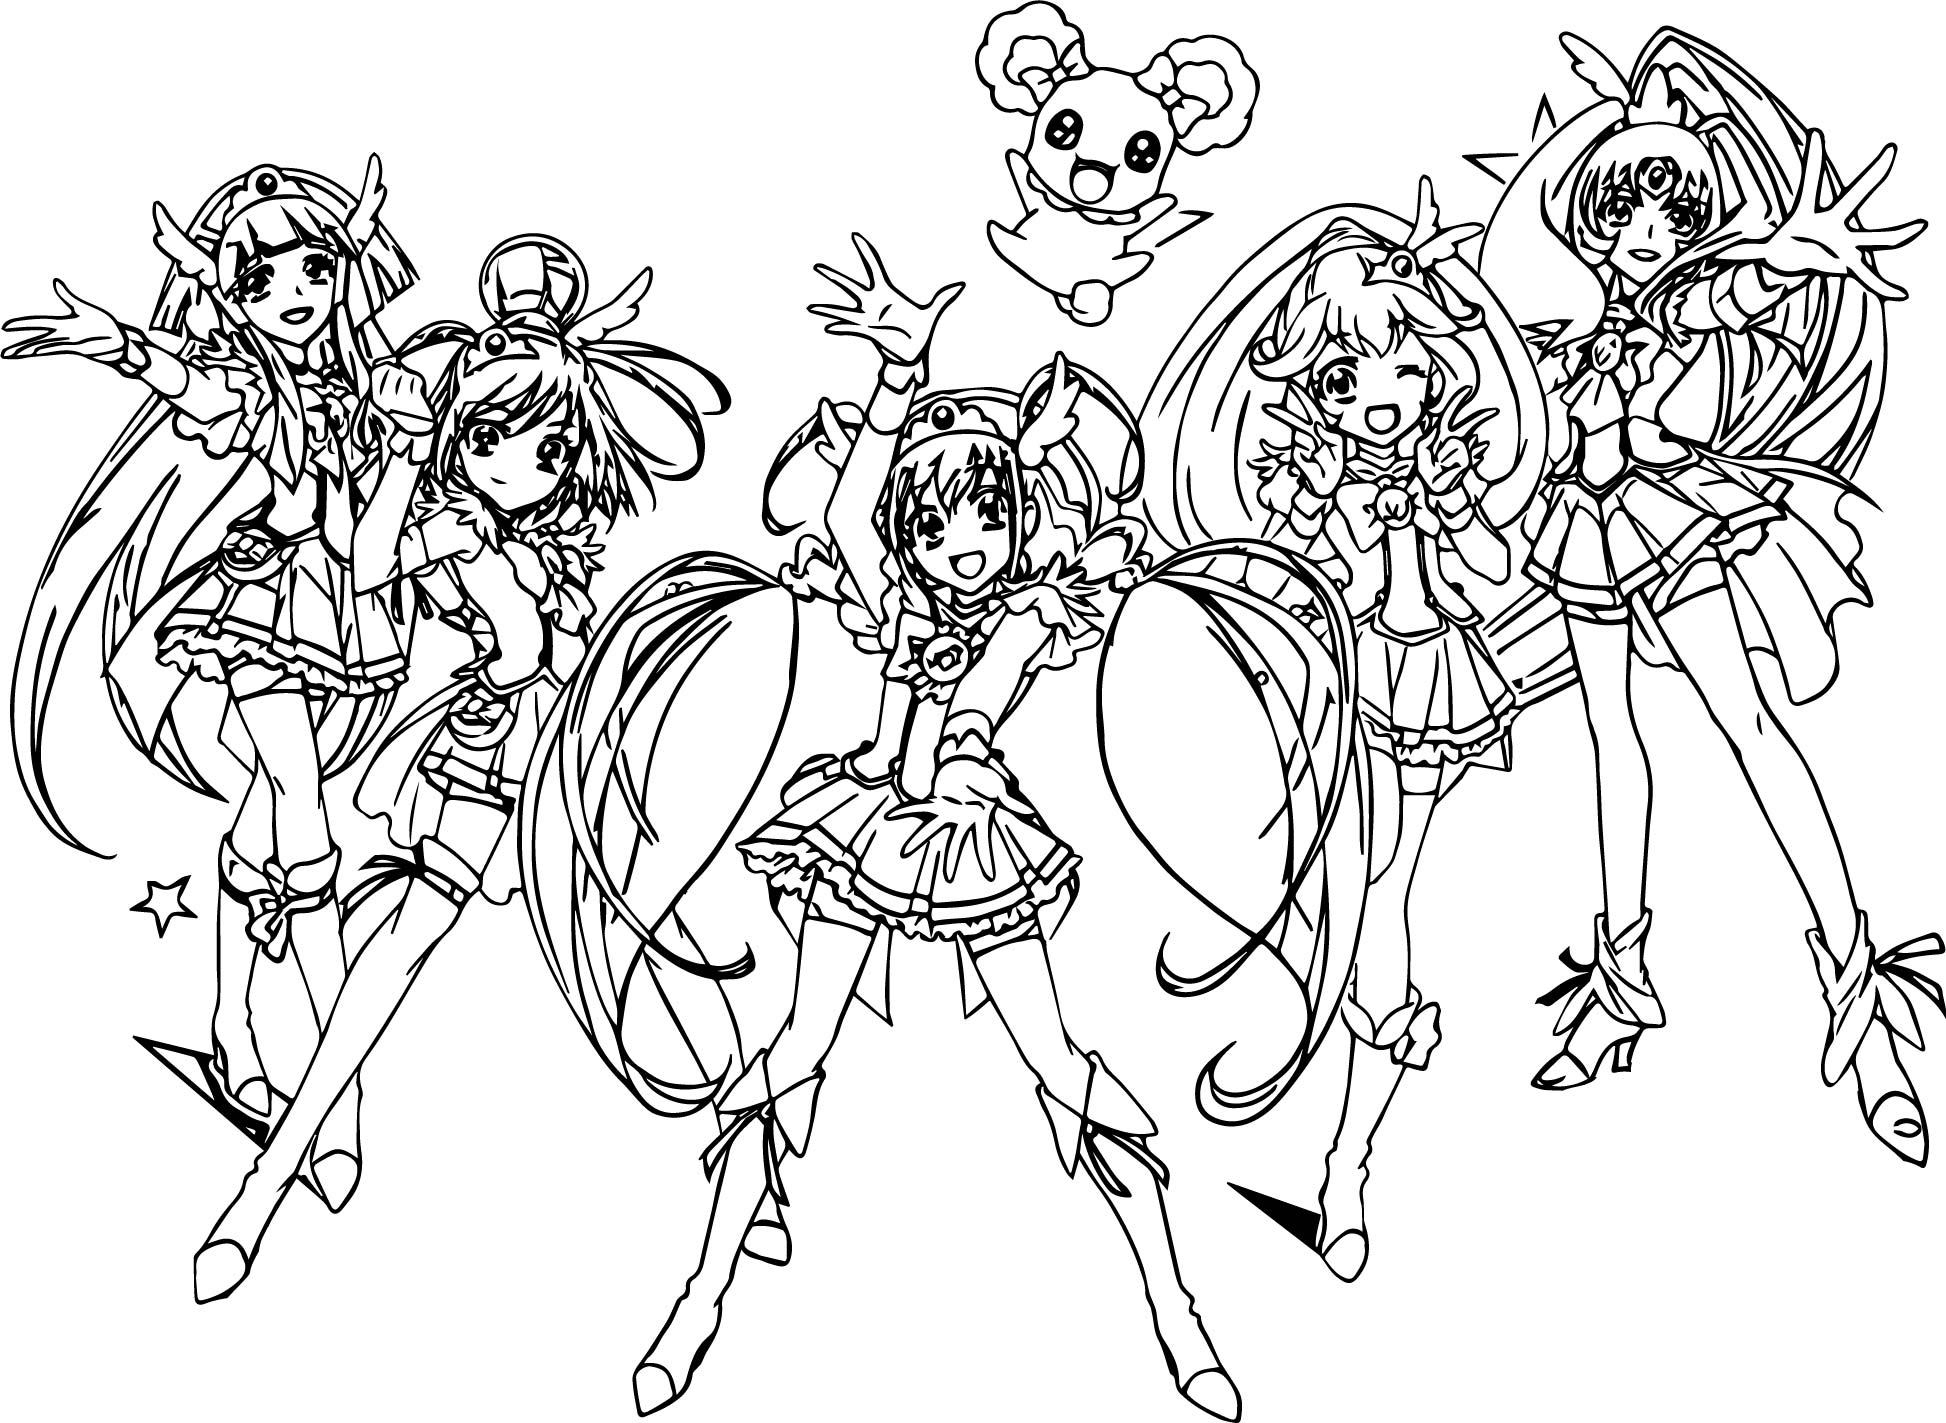 Glitter-Force-All-Group-Team-Coloring-Page